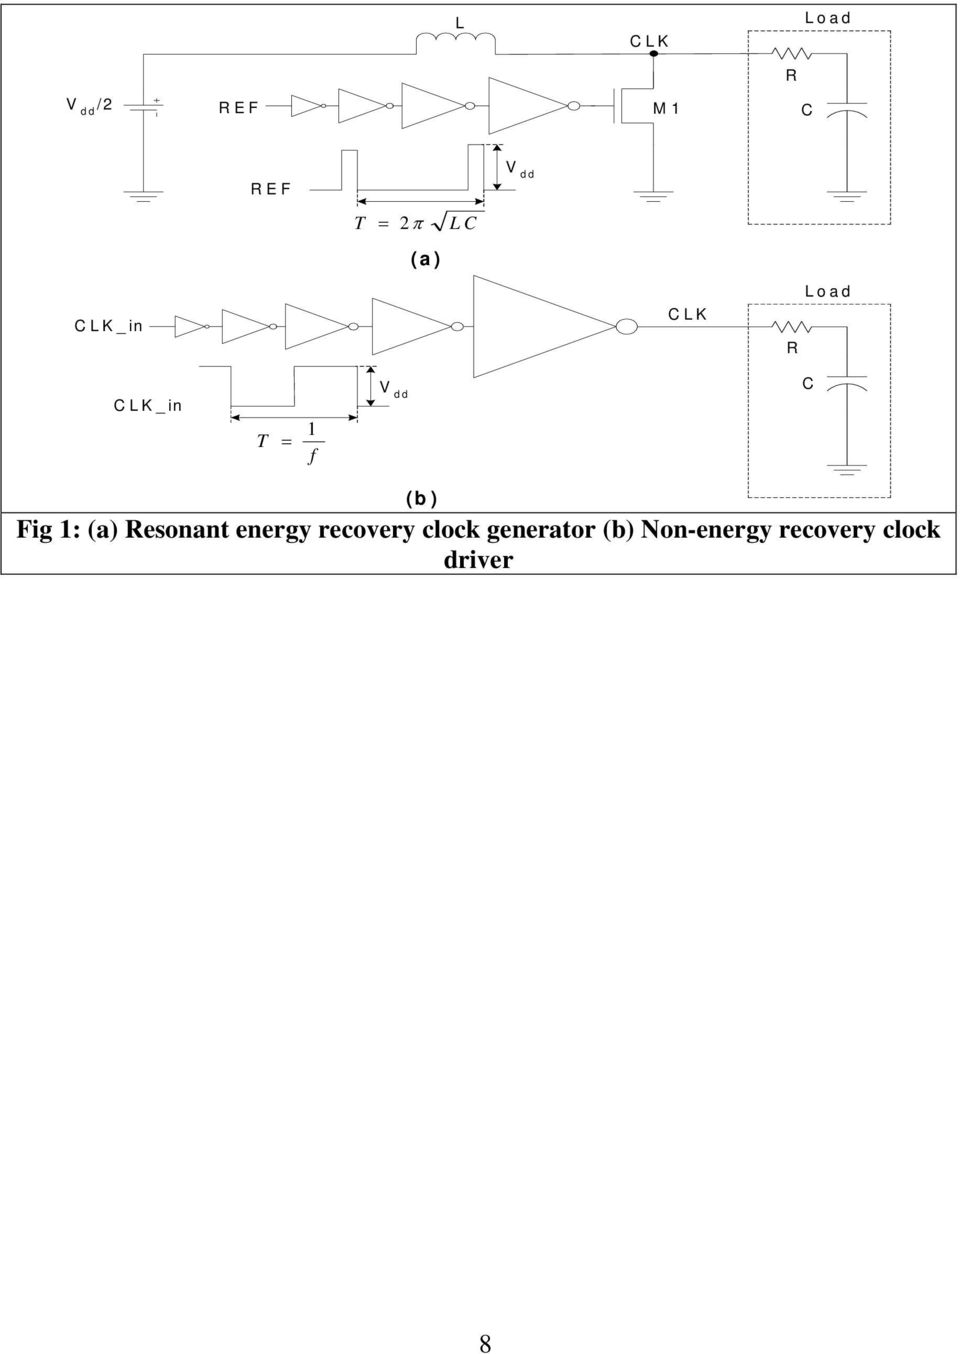 (b) Fig 1: (a) Resonant energy recovery clock